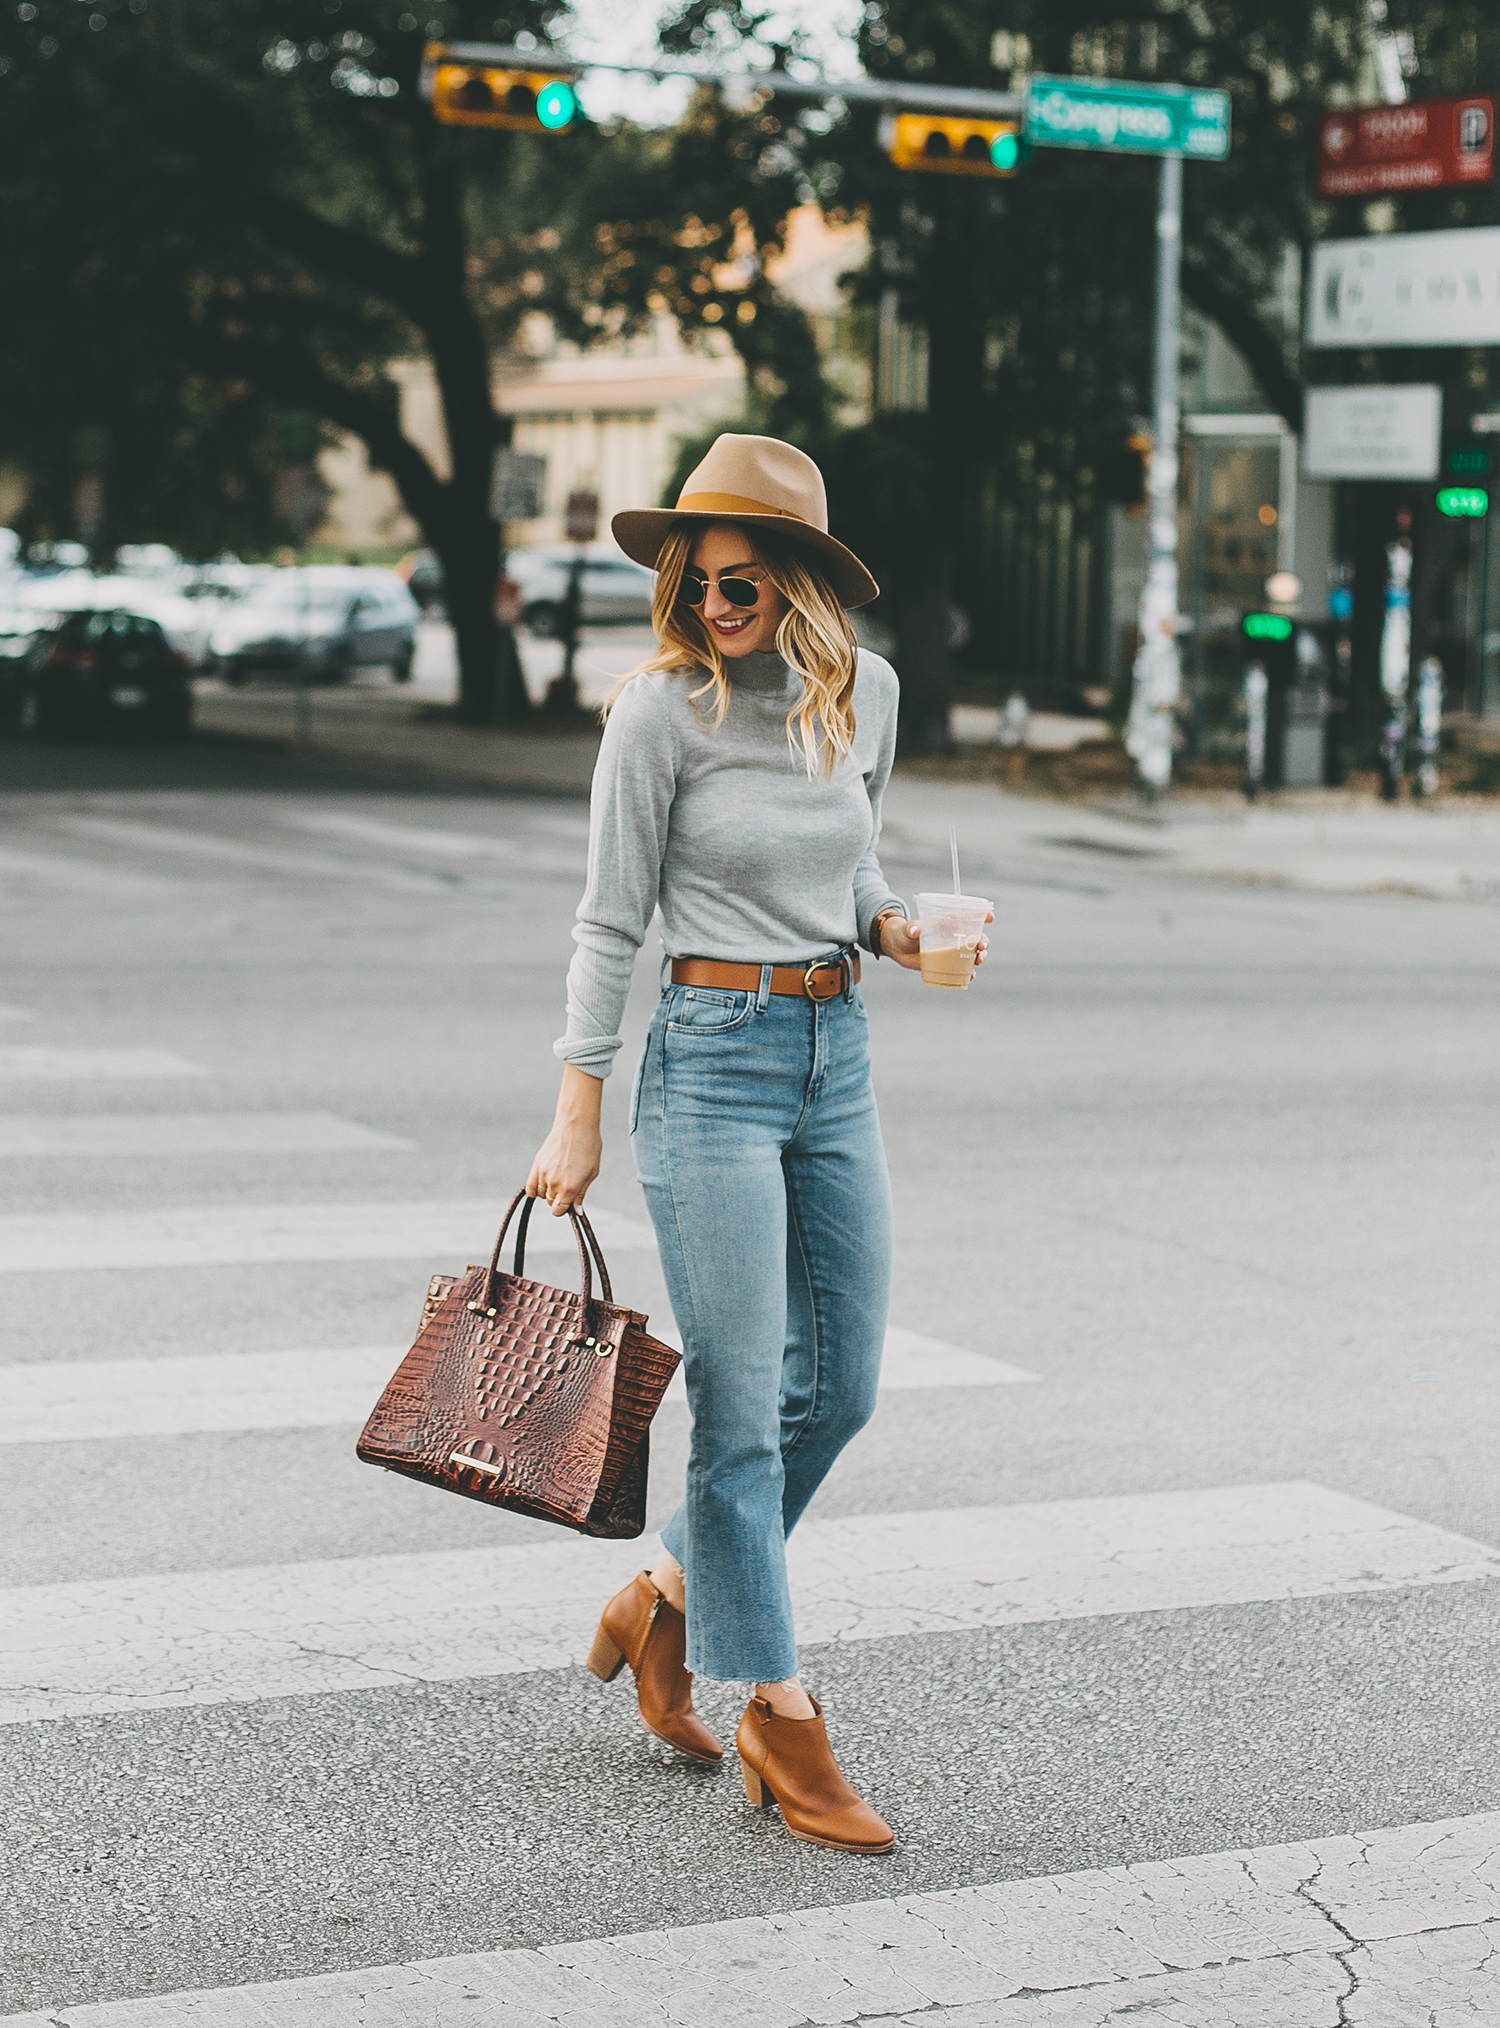 livvyland-blog-olivia-watson-south-congress-avenue-austin-texas-fashion-life-style-blogger-bdg-high-waist-crop-flare-jeans-9